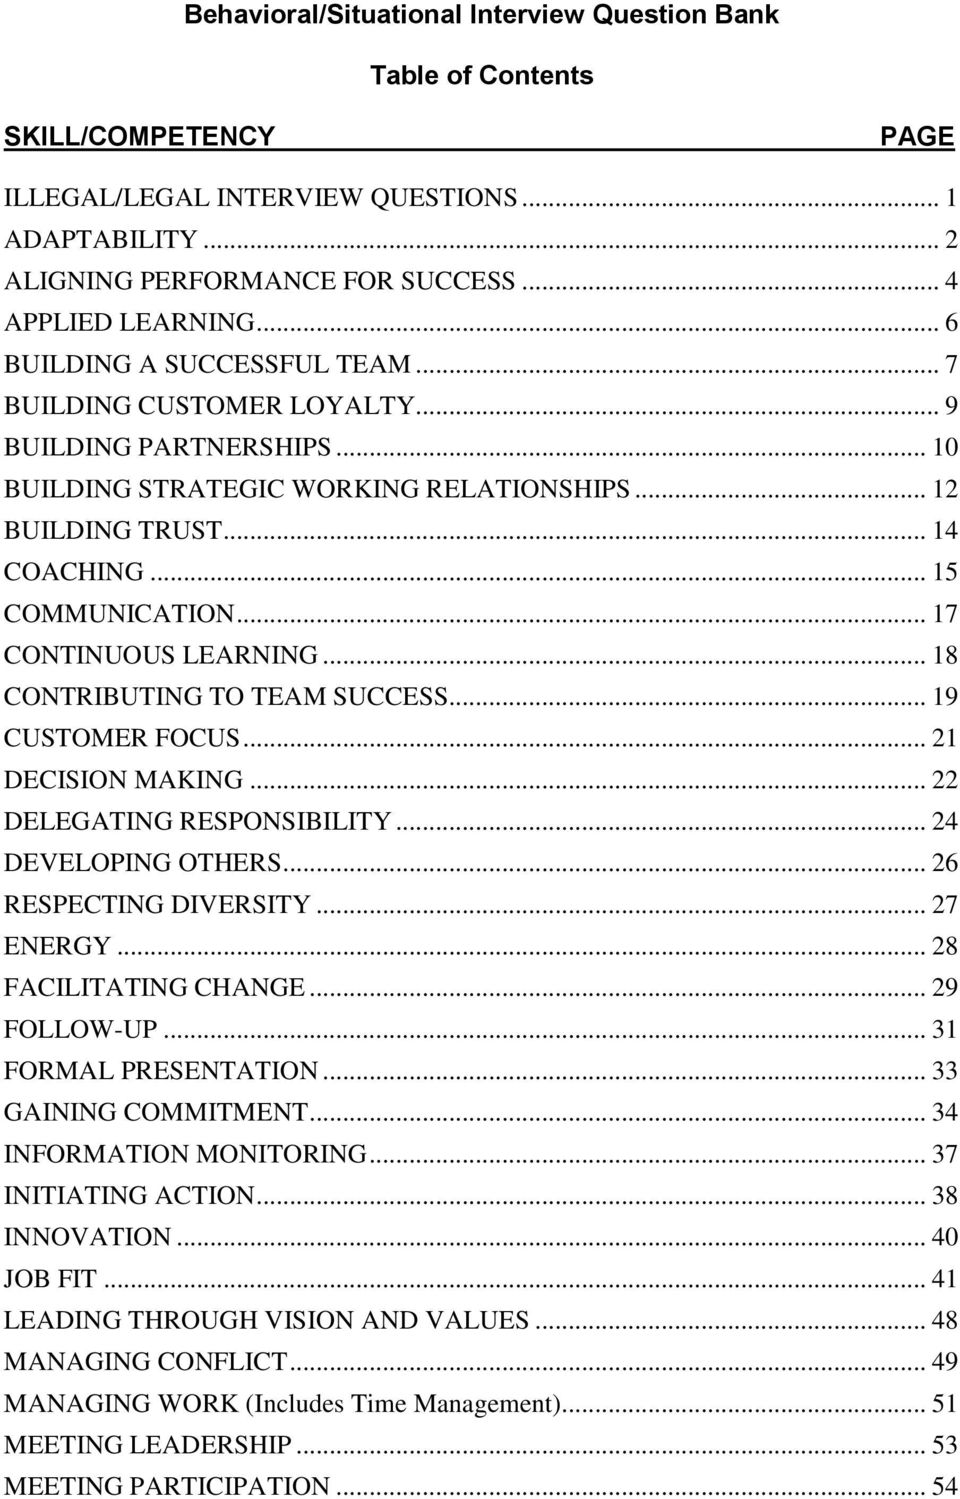 behavioral situational interview question bank table of contents 17 continuous learning 18 contributing to team success